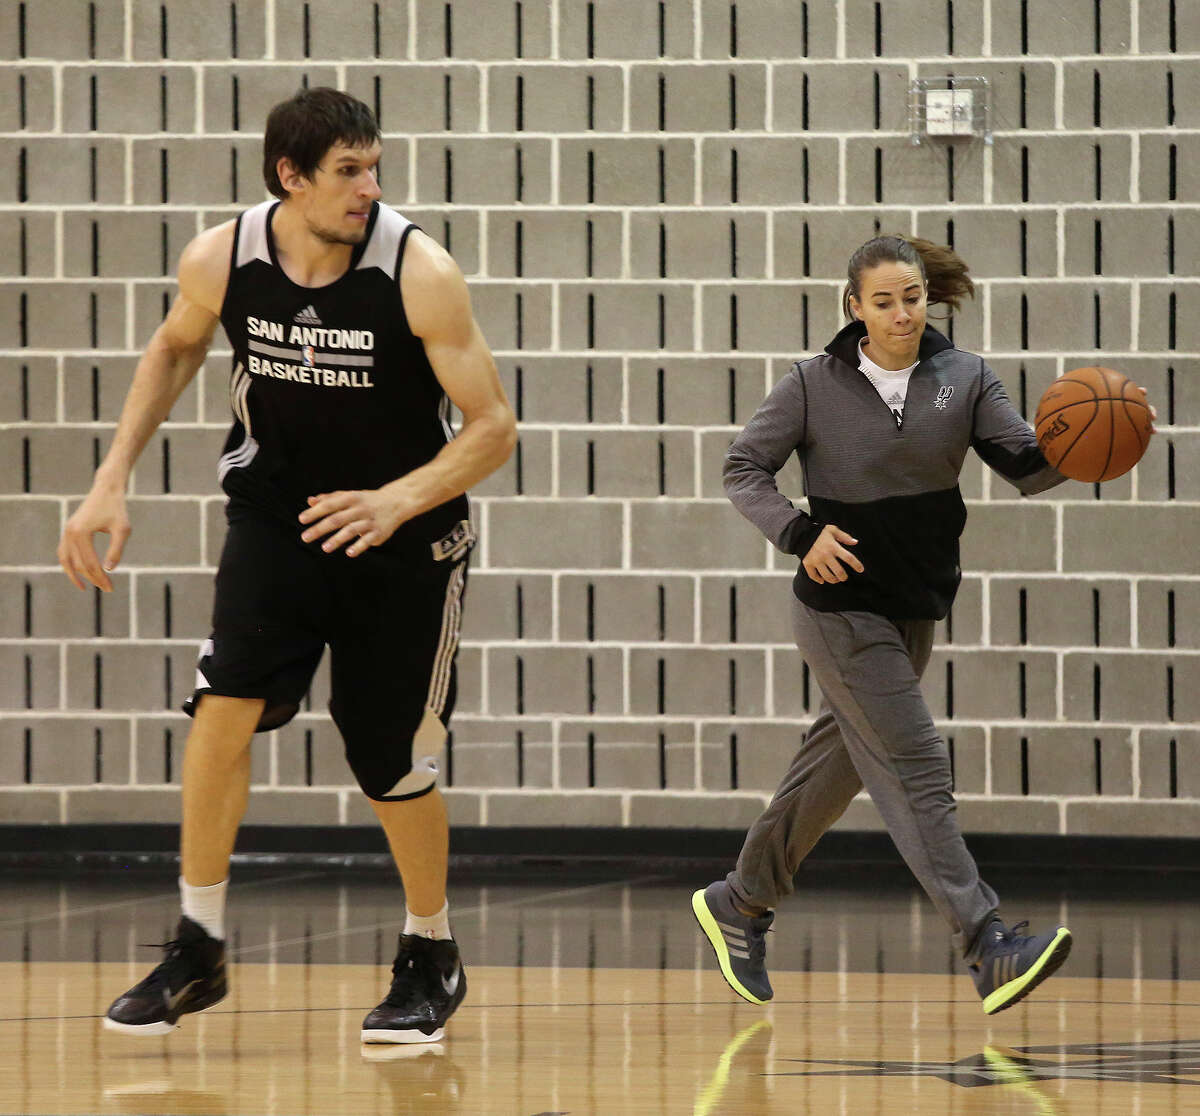 Spurs assistant coach Becky Hammon works with Boban Marjanovic at the Spurs practice facility on Nov. 25, 2015.